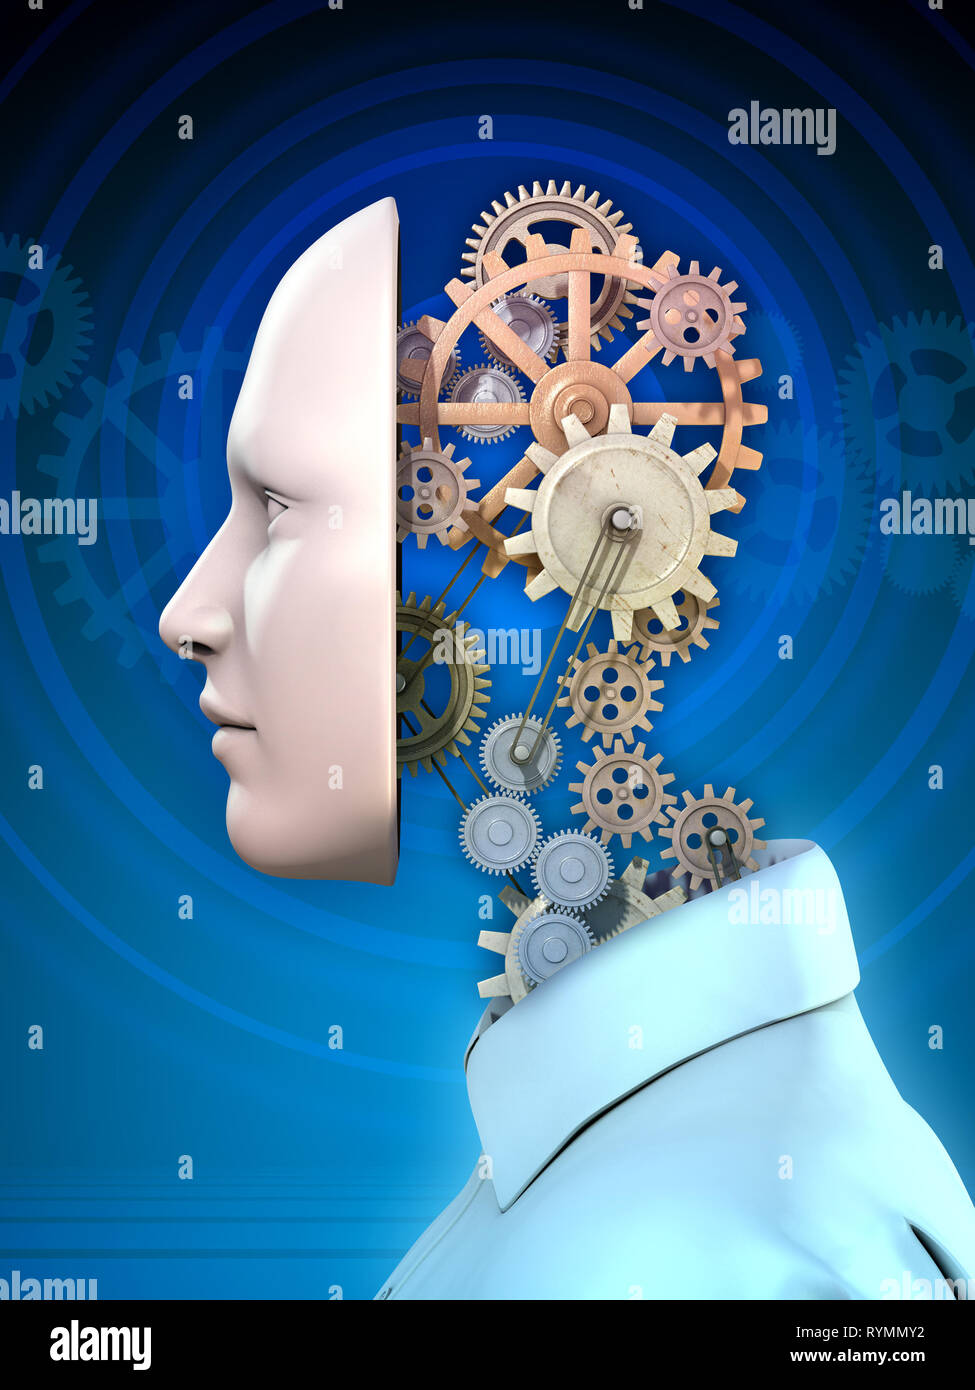 Gear mechanism as a metaphor of the inner working of the human mind. 3D illustration. - Stock Image